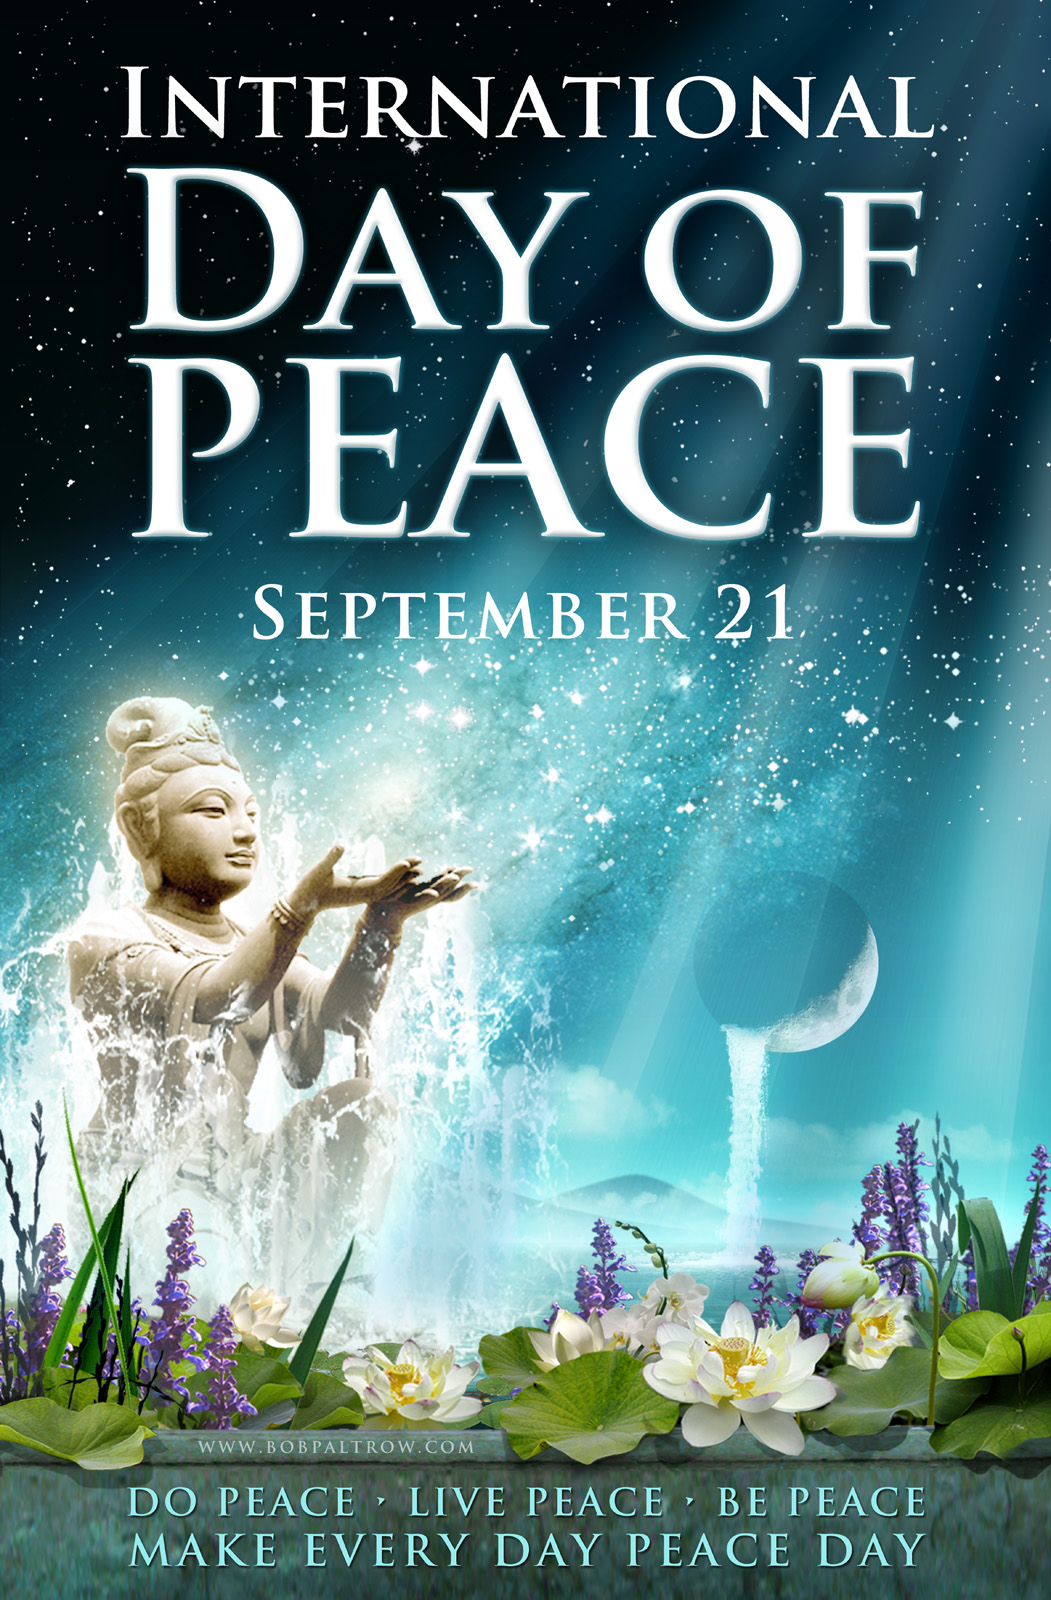 POSTER DESIGN - International Day of Peace - Illustration & Design by Bob Paltrow